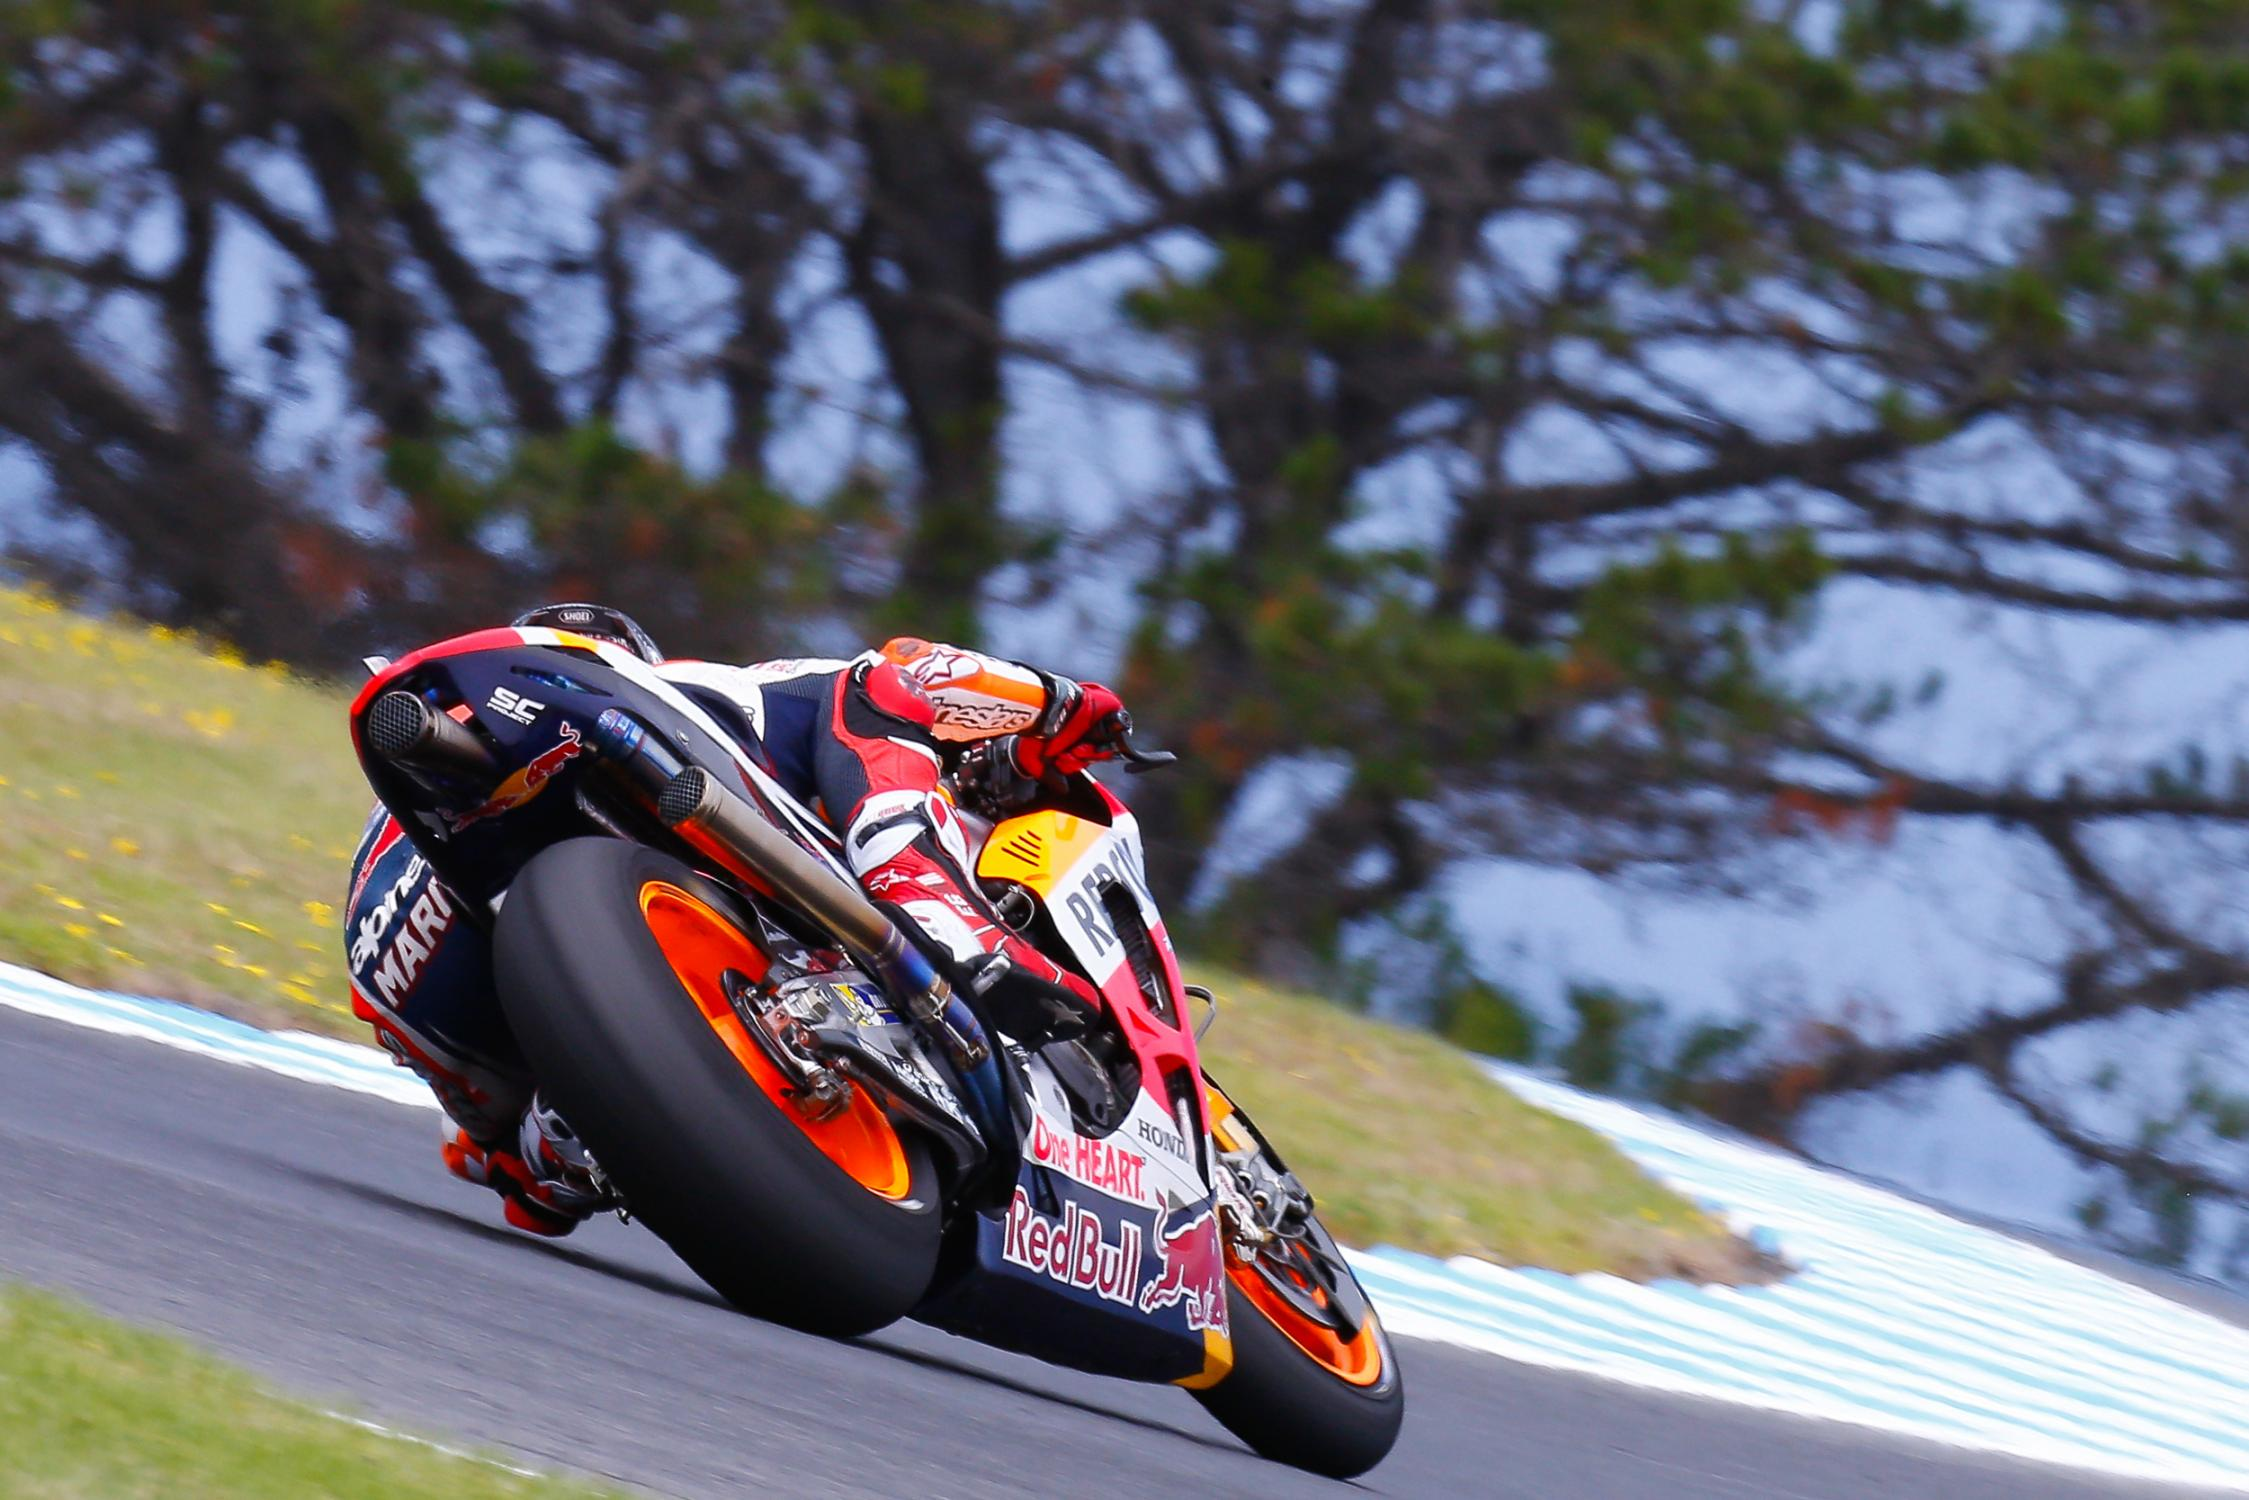 [MotoGP] Test Phillip Island 93-marc-marquez-esp-2017-action-australia-motogp-phillip-island-pre-season-test08269_r1_action.gallery_full_top_fullscreen